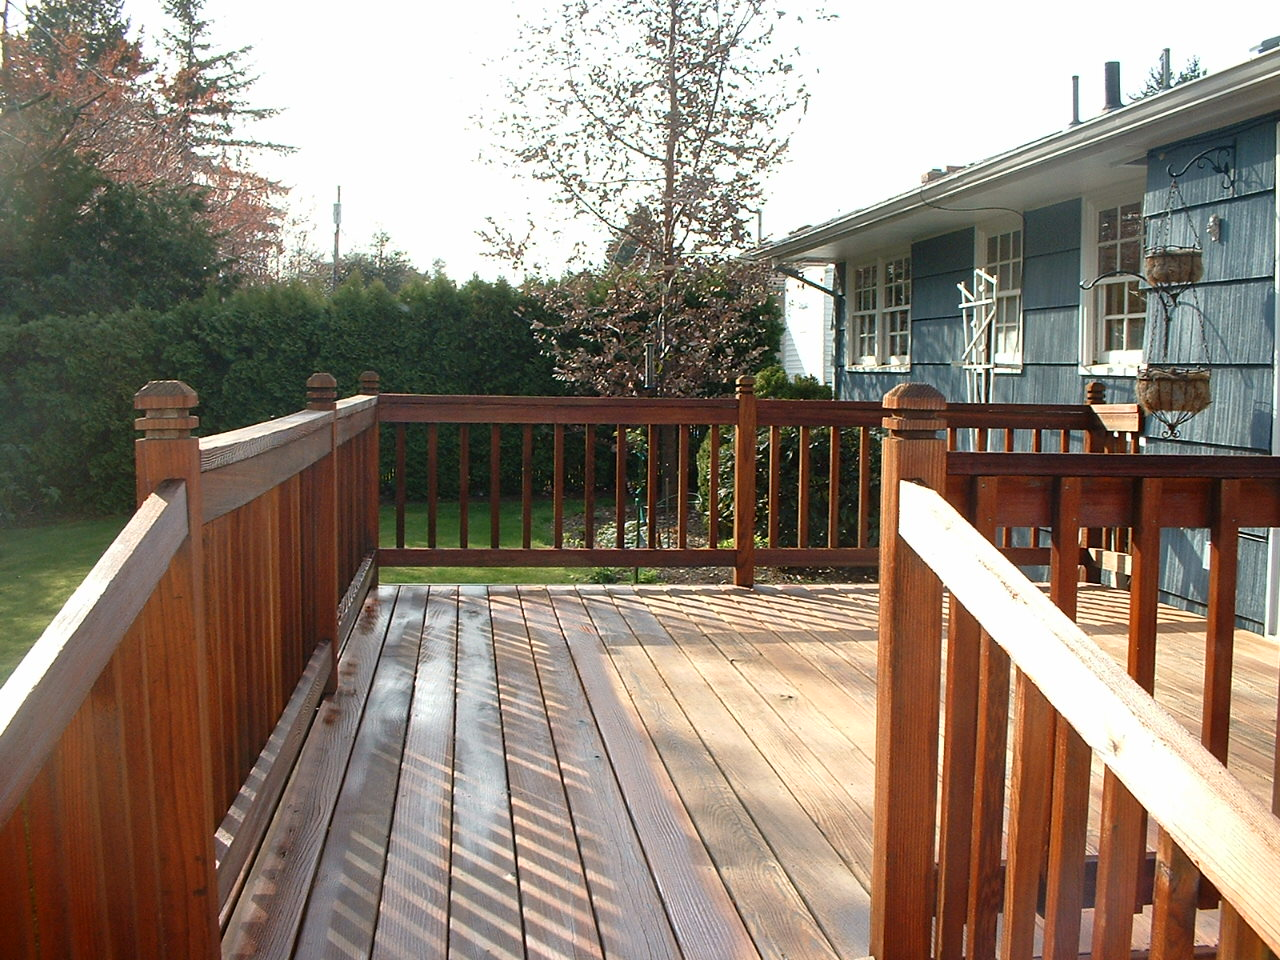 Deck - After Maintenance